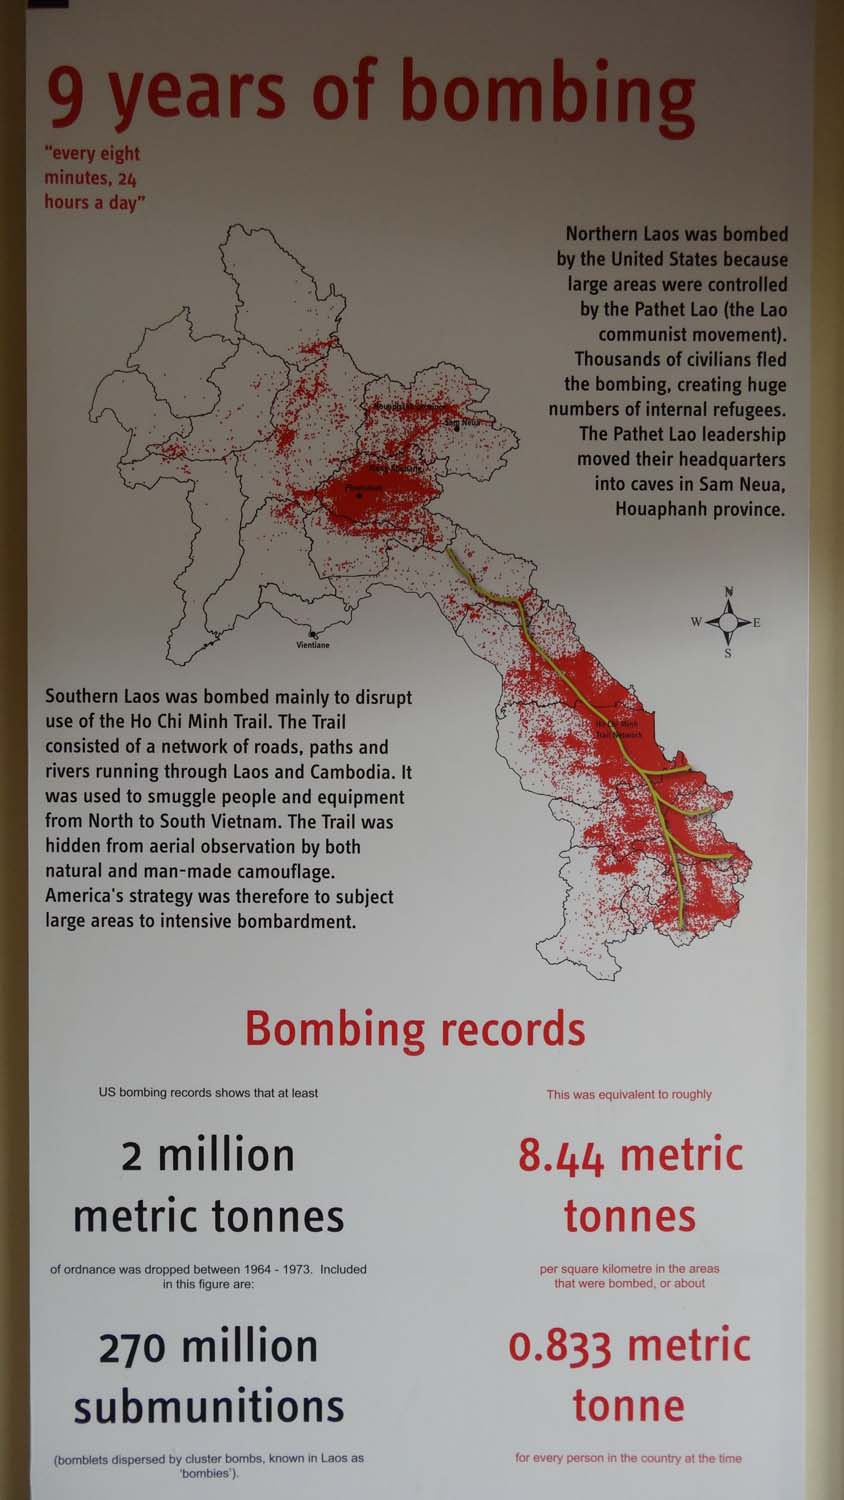 map of main bombing areas in Laos